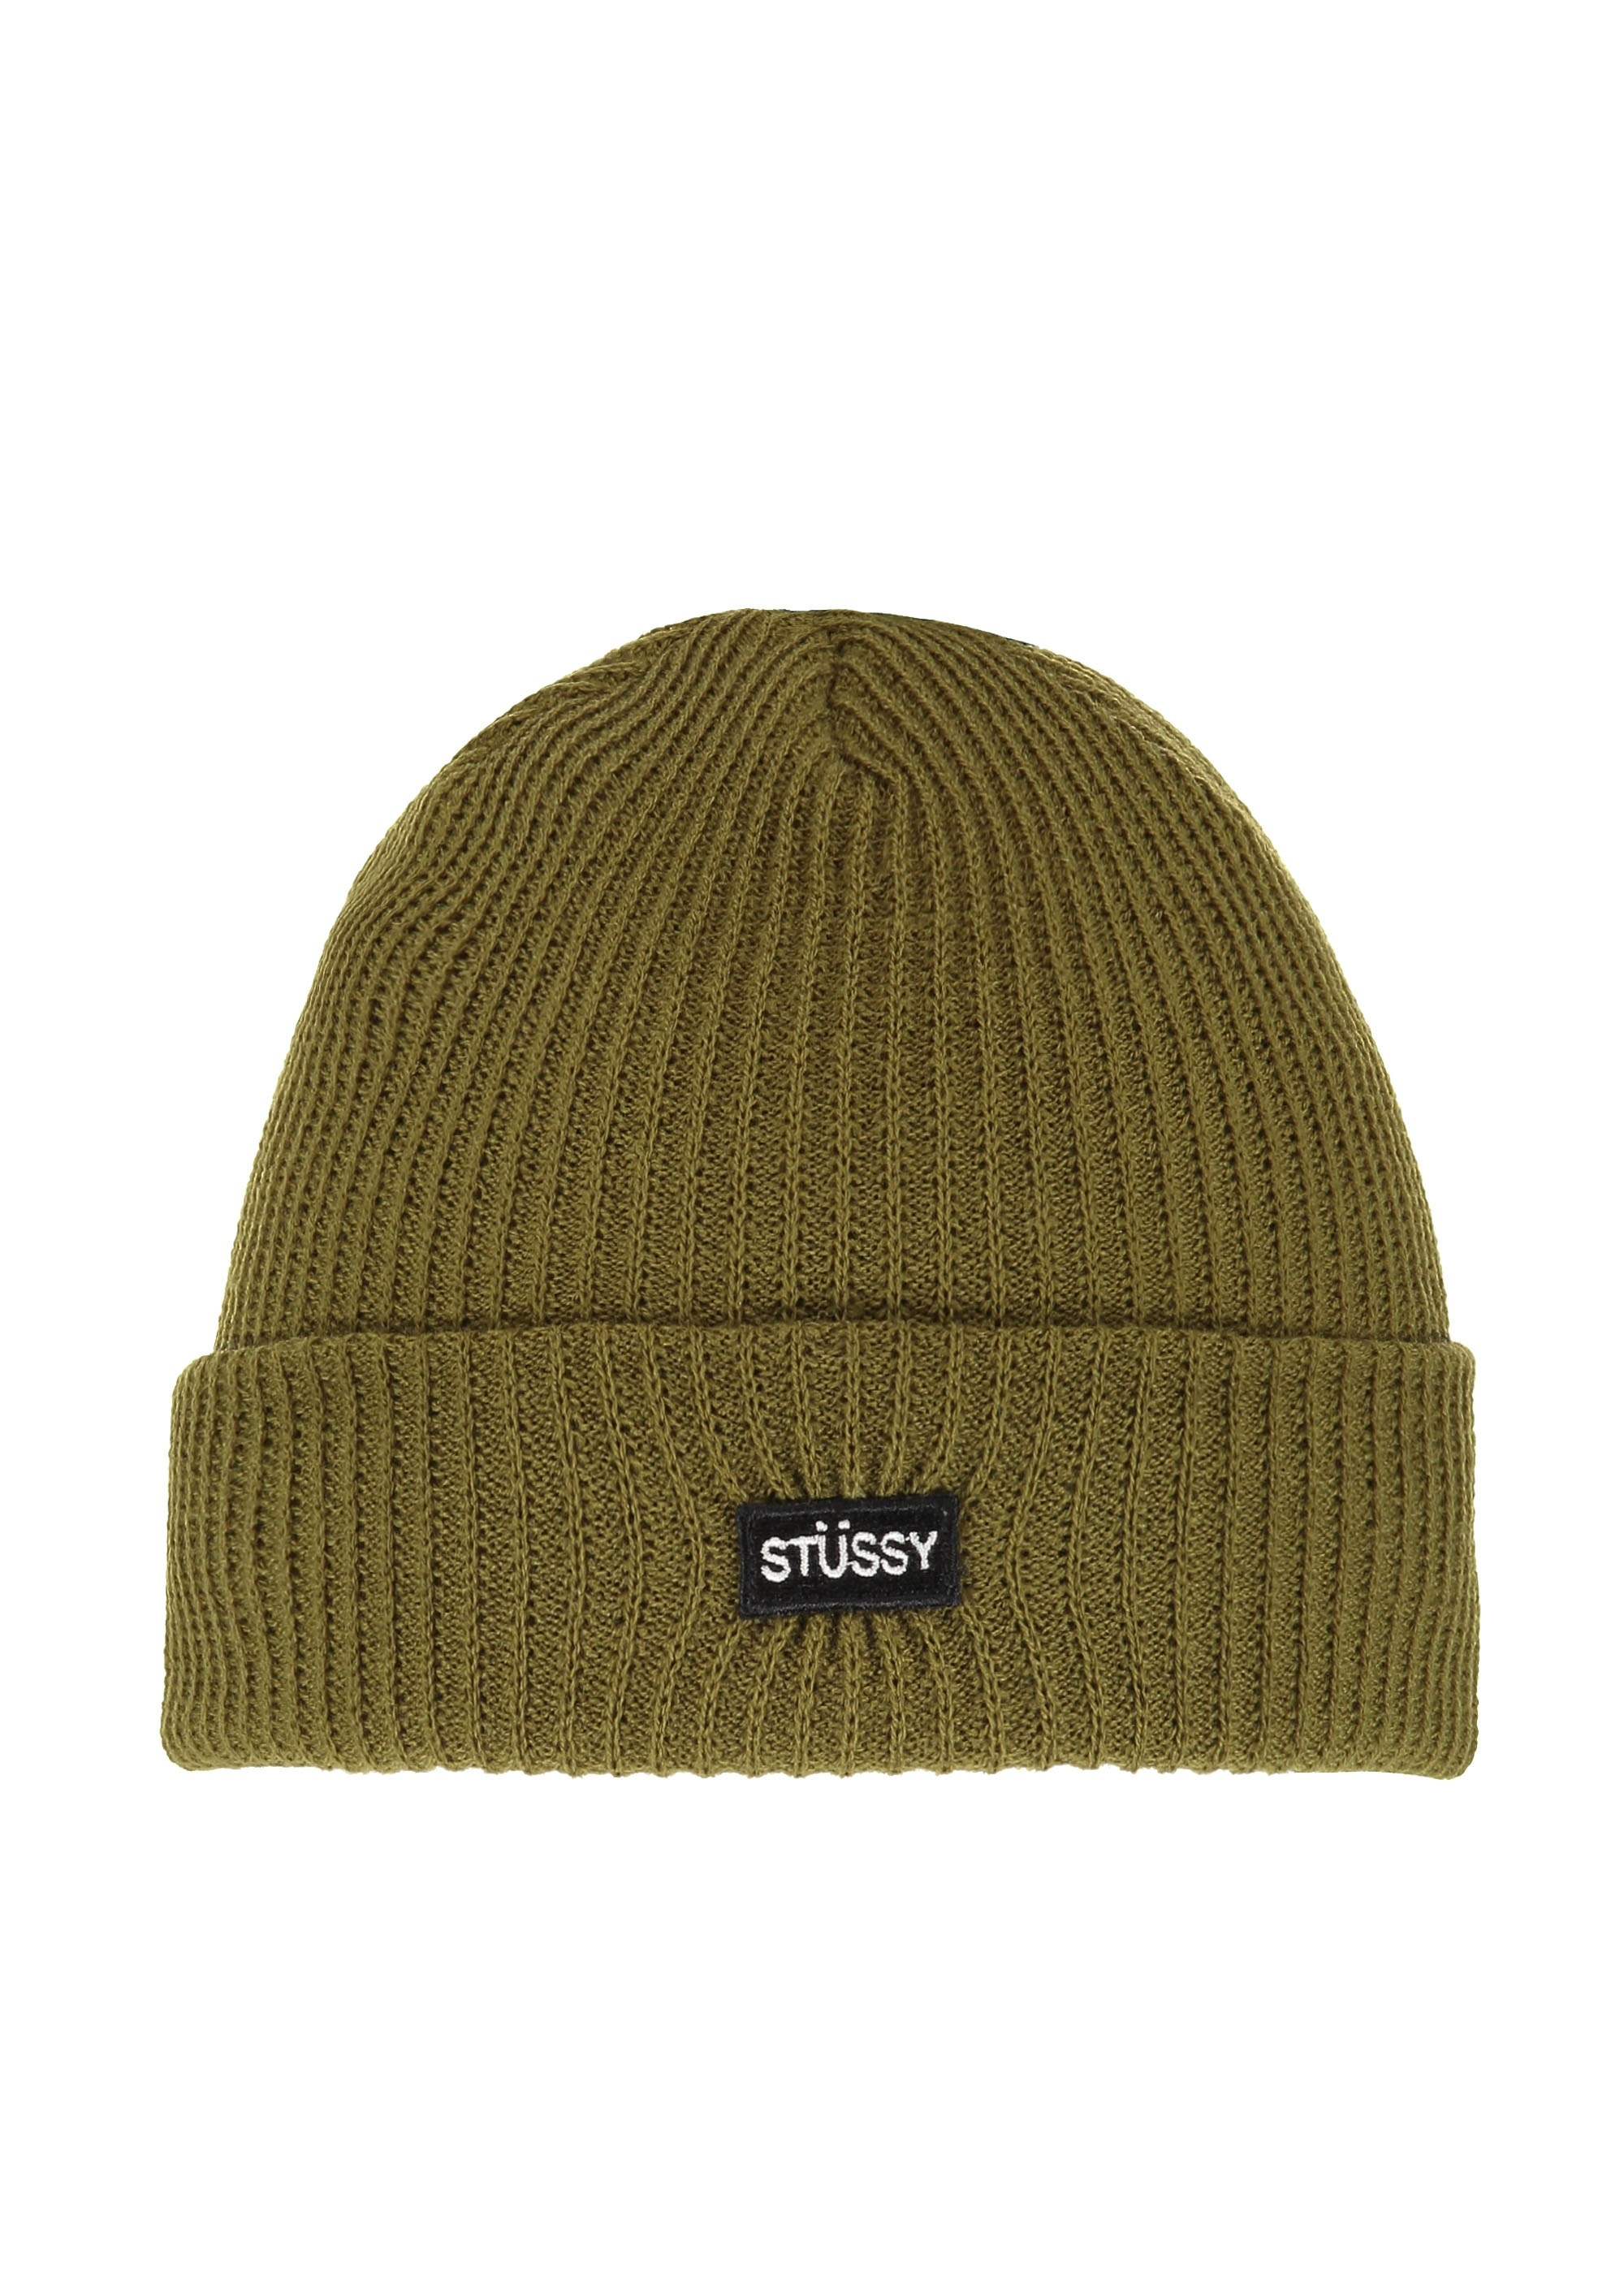 45cc3153eb3 Stussy Small Patch Watchcap Beanie - Green - Triads Mens from Triads UK